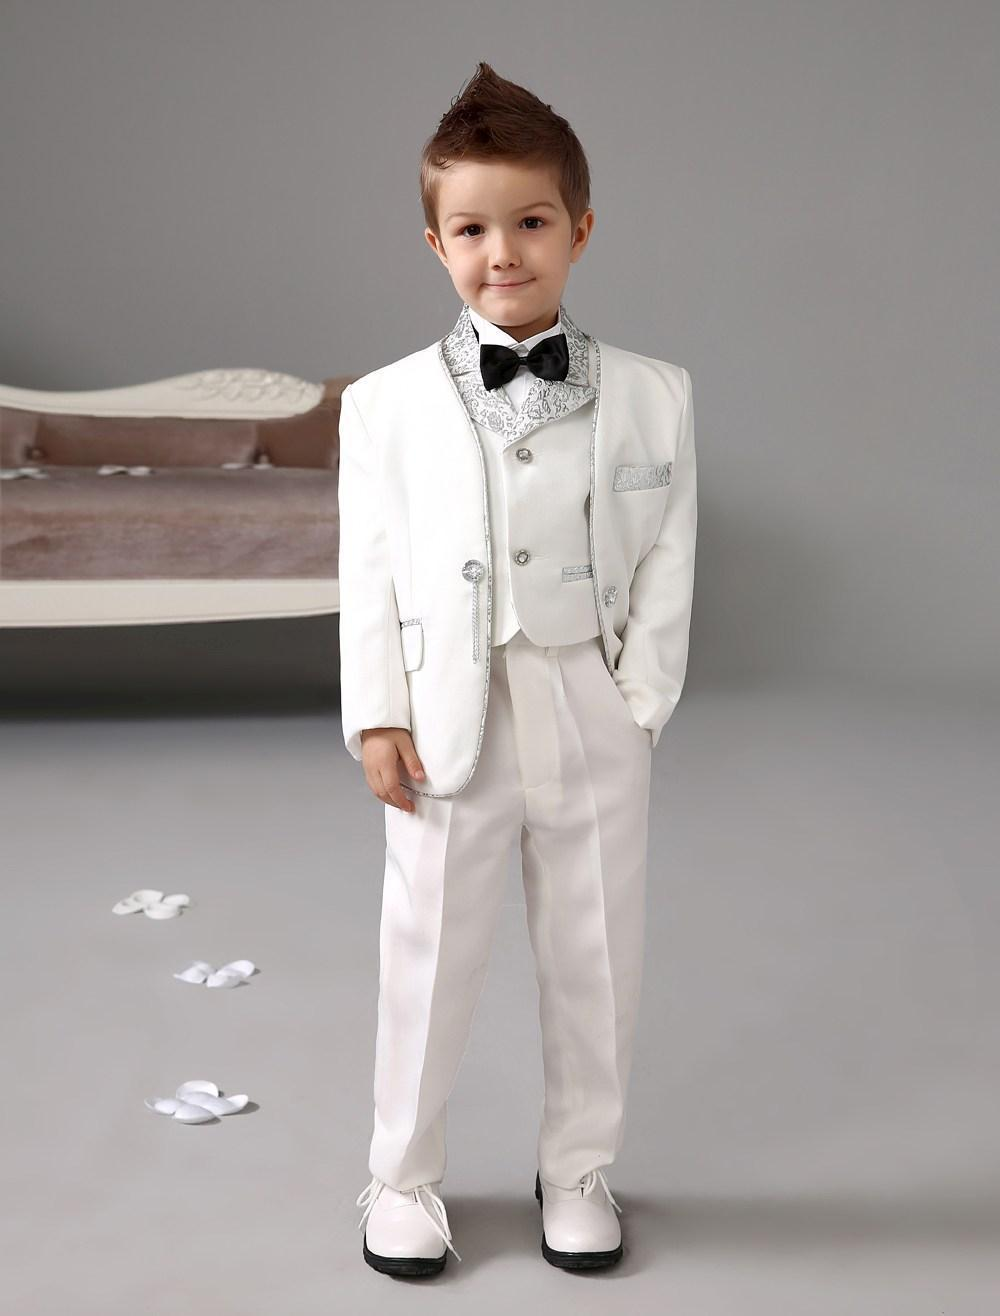 New Arrivals One Button White BoyS Formal Wear Occasion